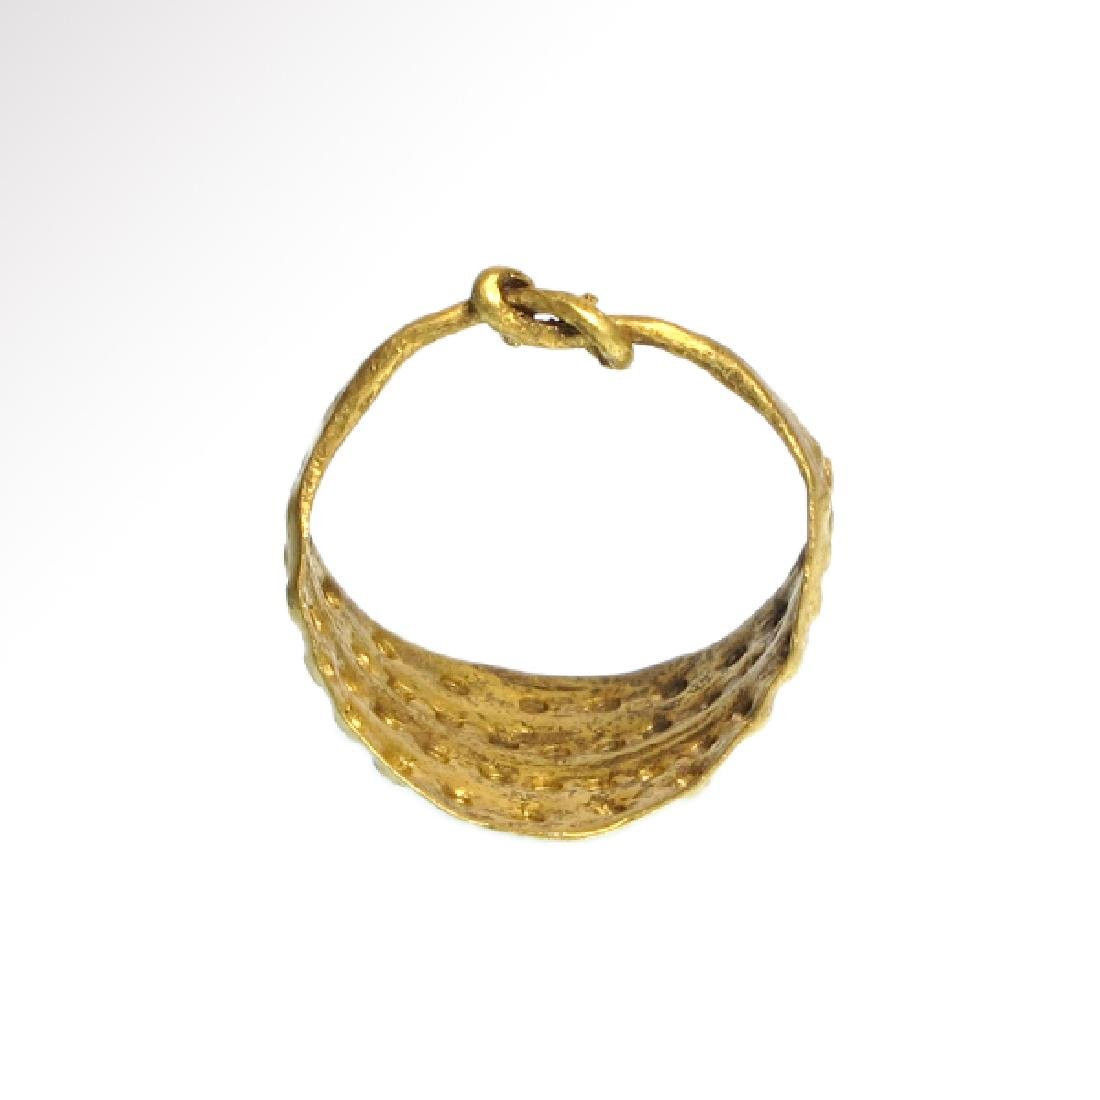 Viking Gold Ring with Punched Decoration, 11th Century - 6